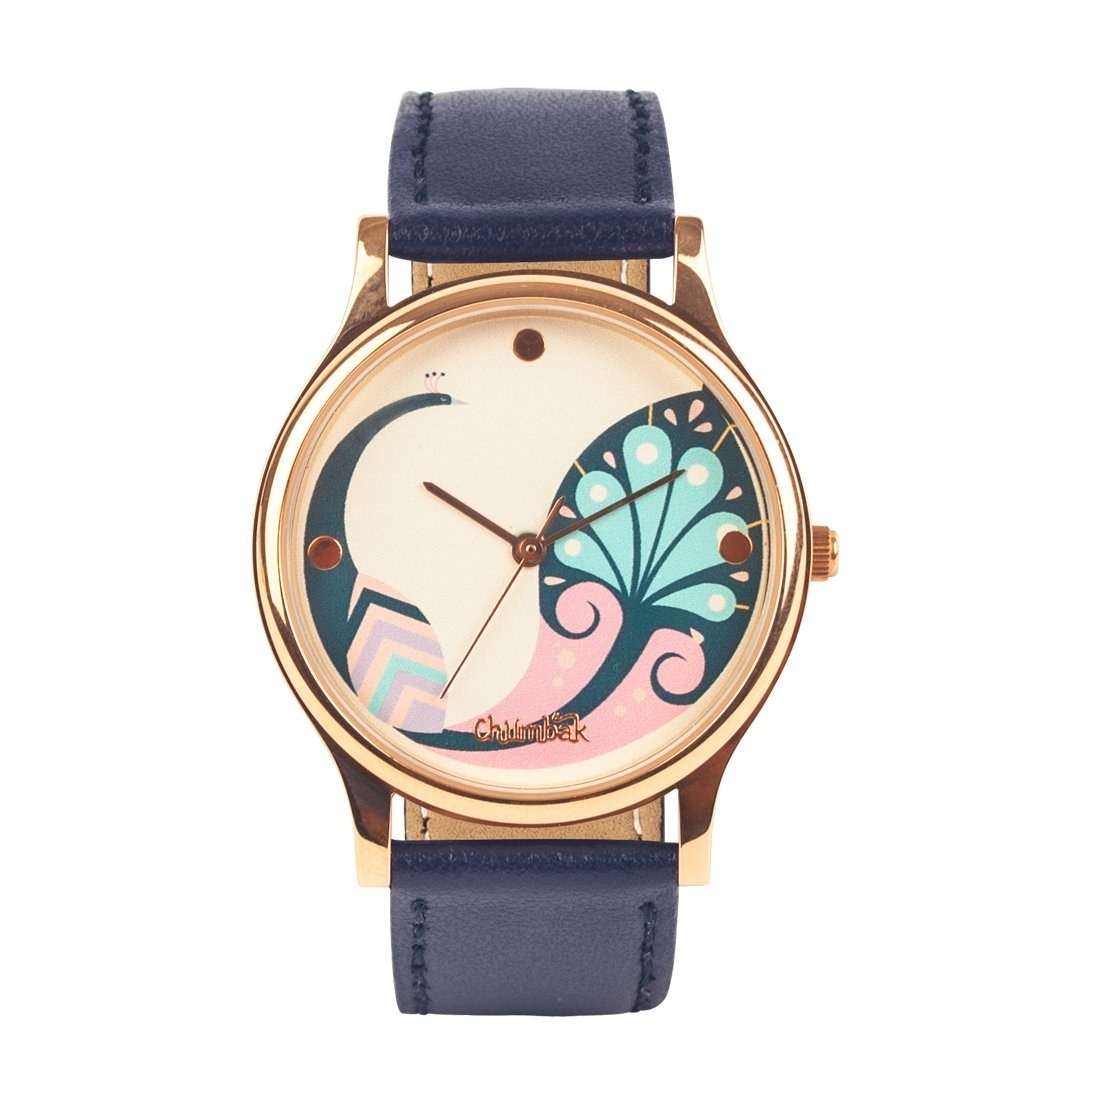 A blue and pink wrist watch